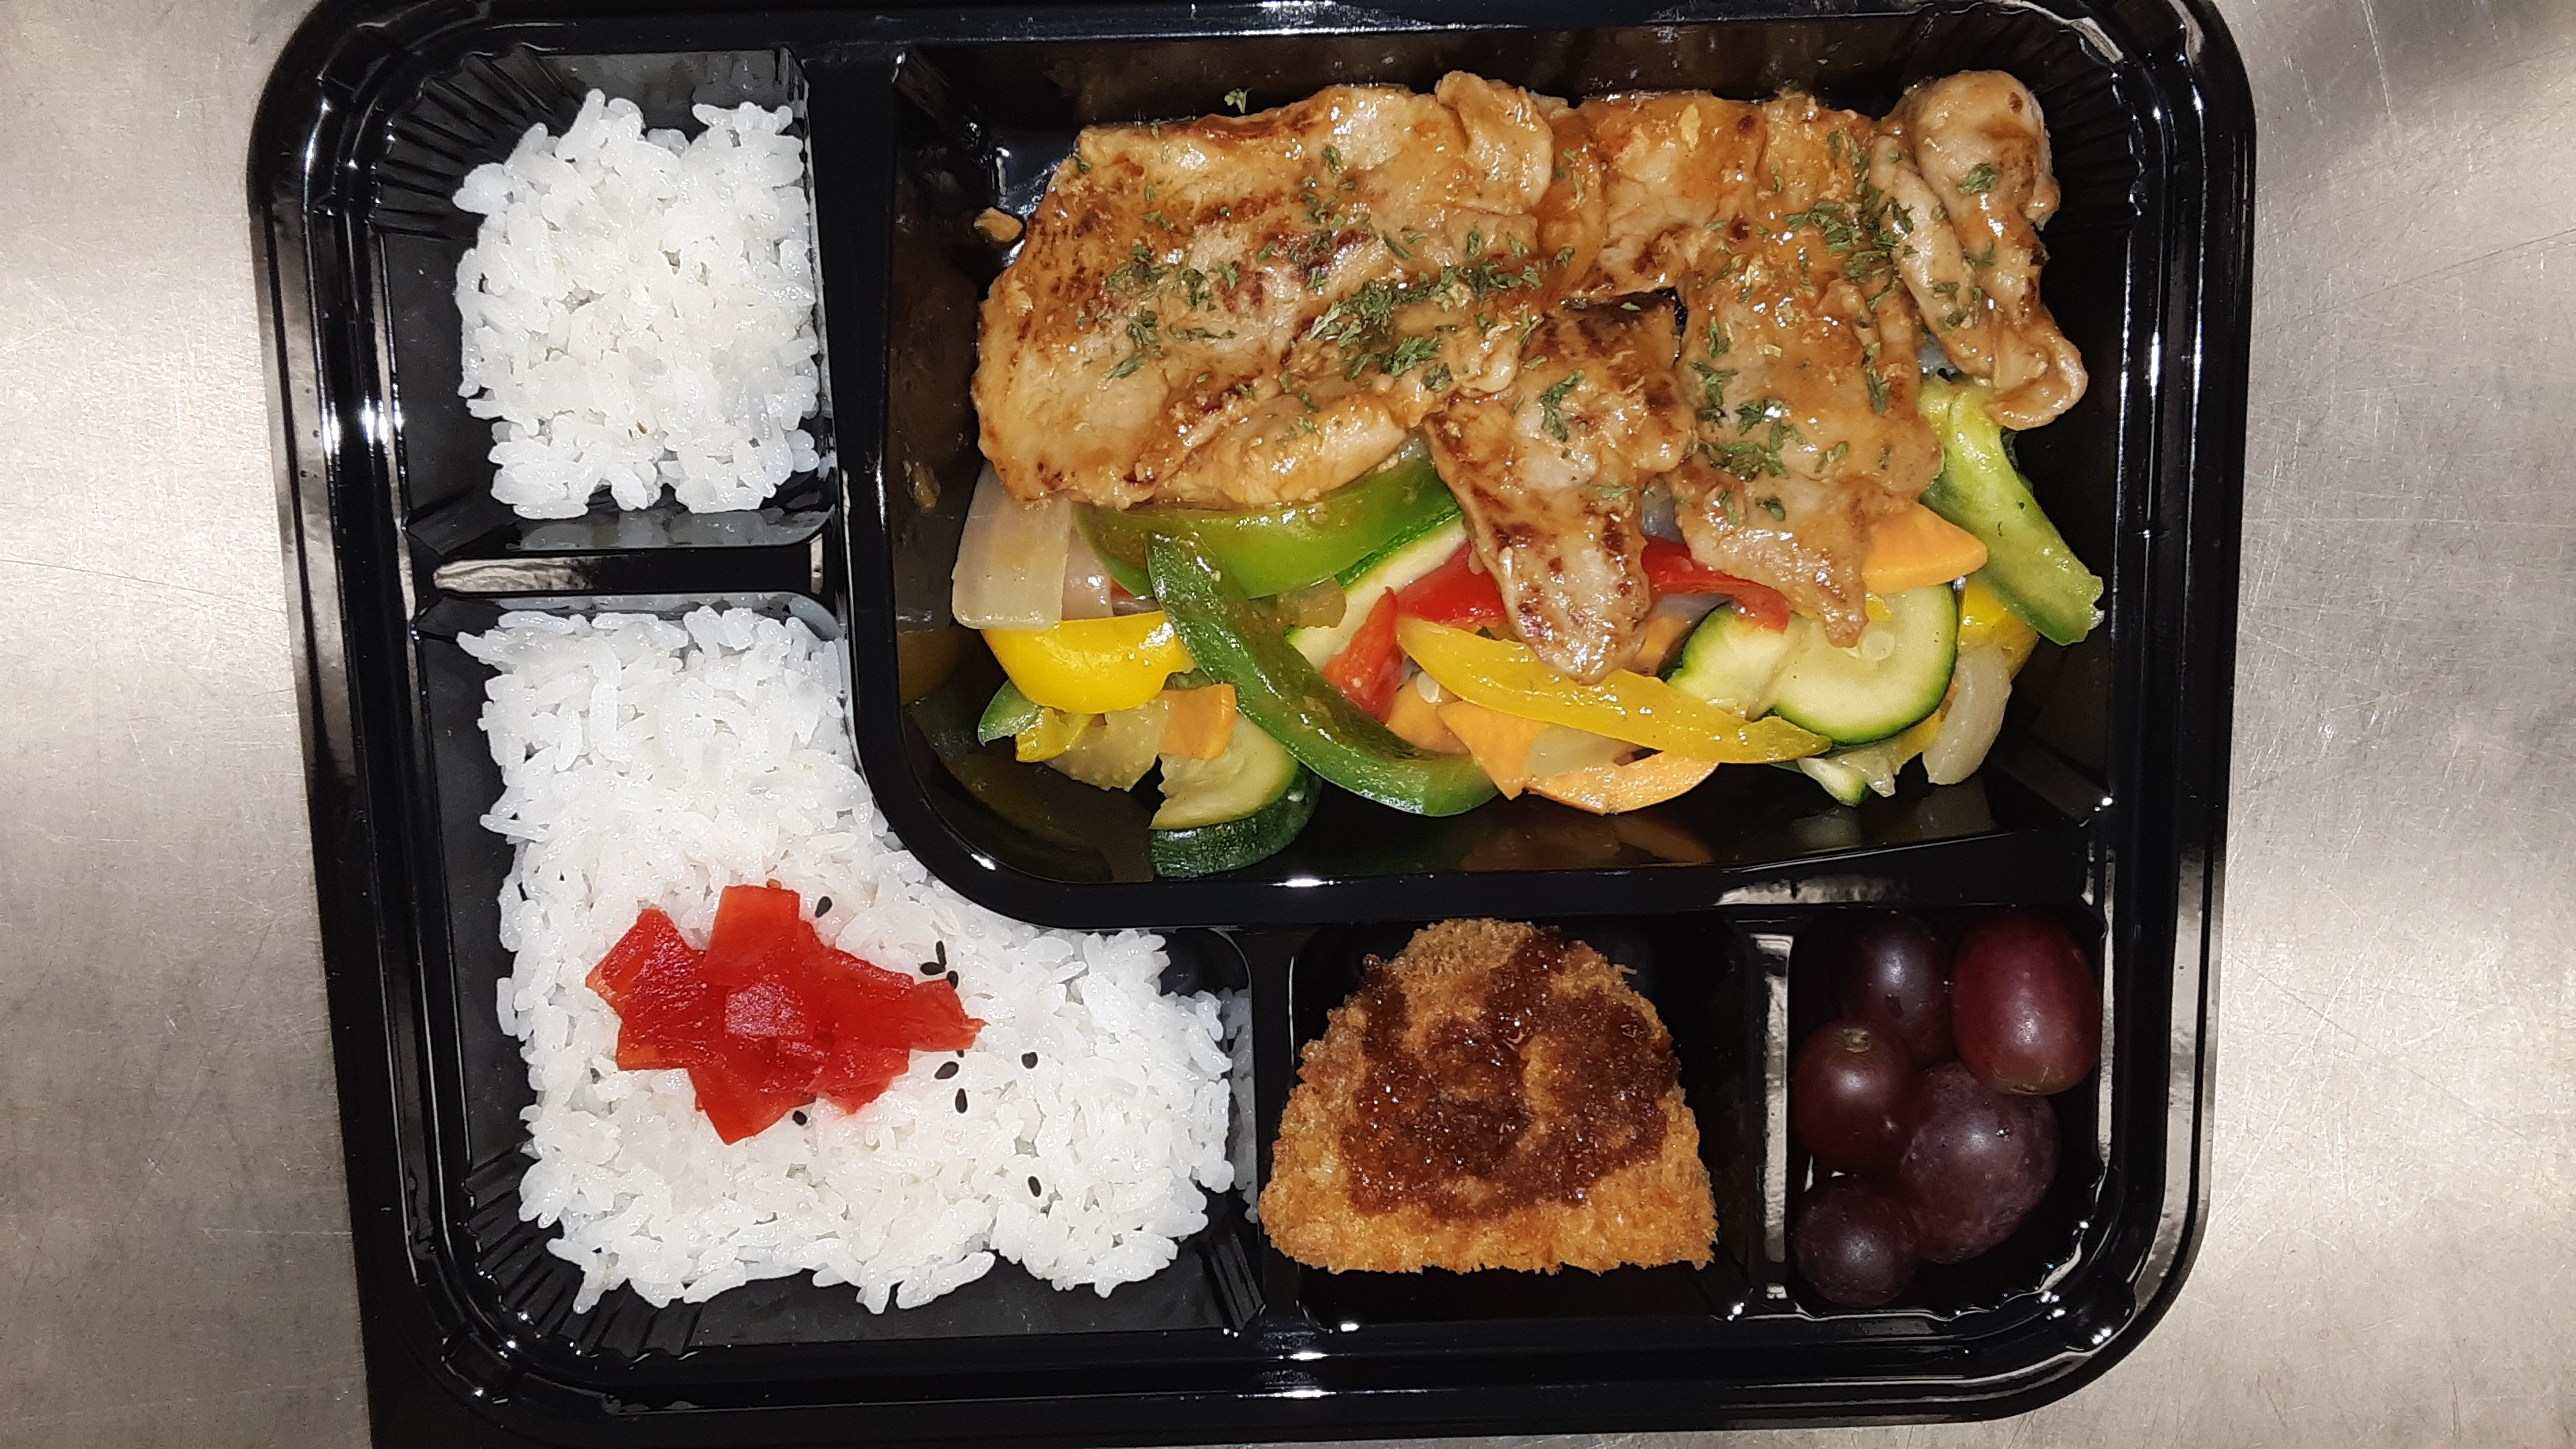 Thursday,Aug 20 BENTO